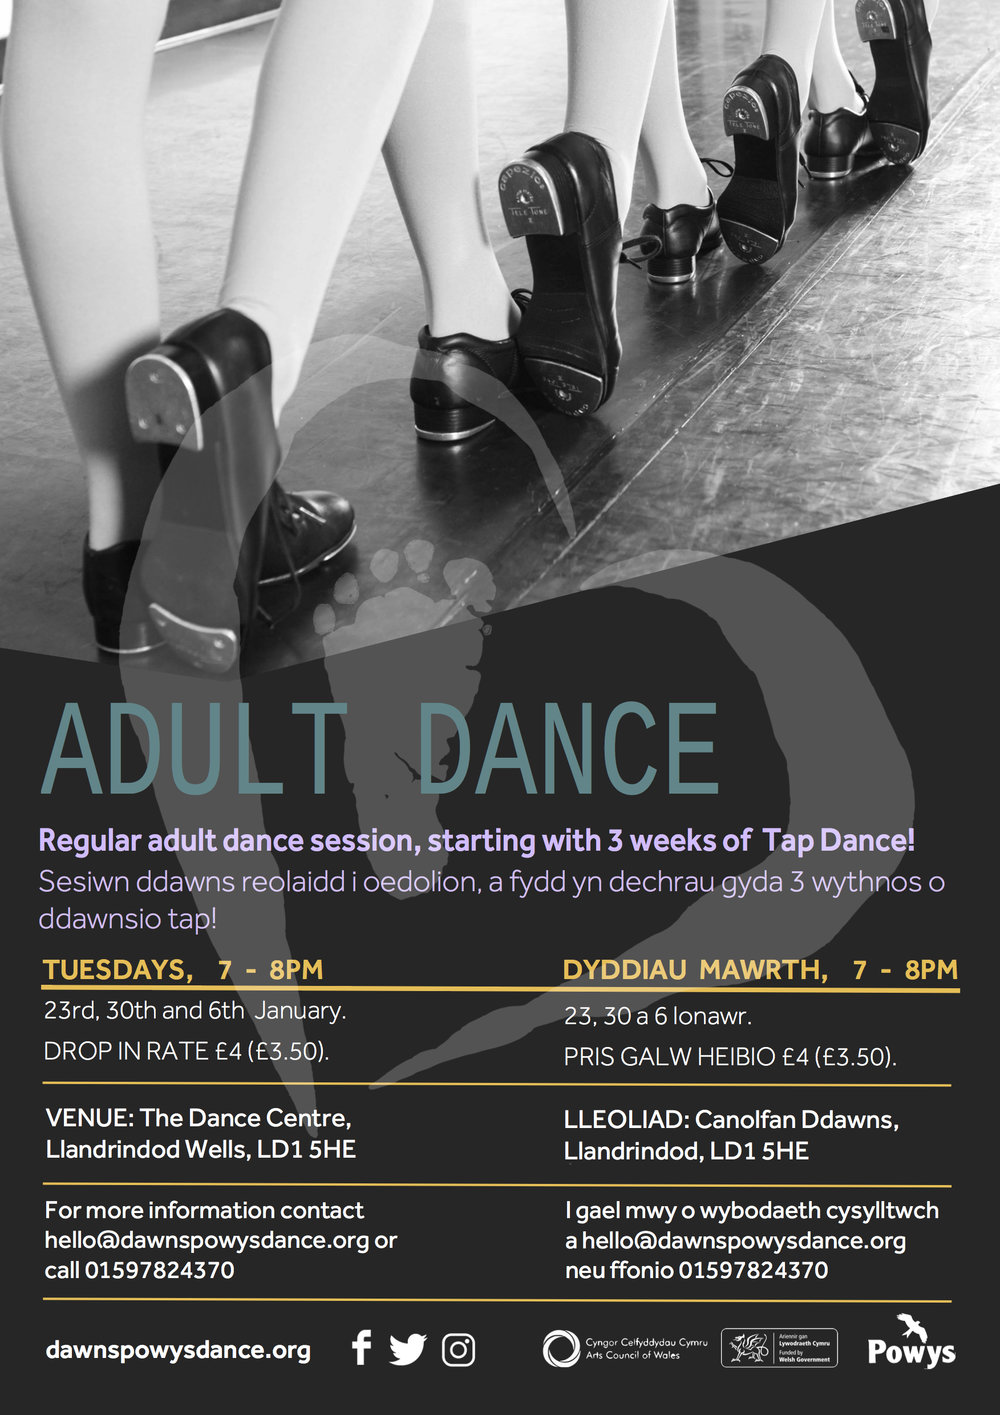 Adult Dance - Tap 2018 for web.jpg